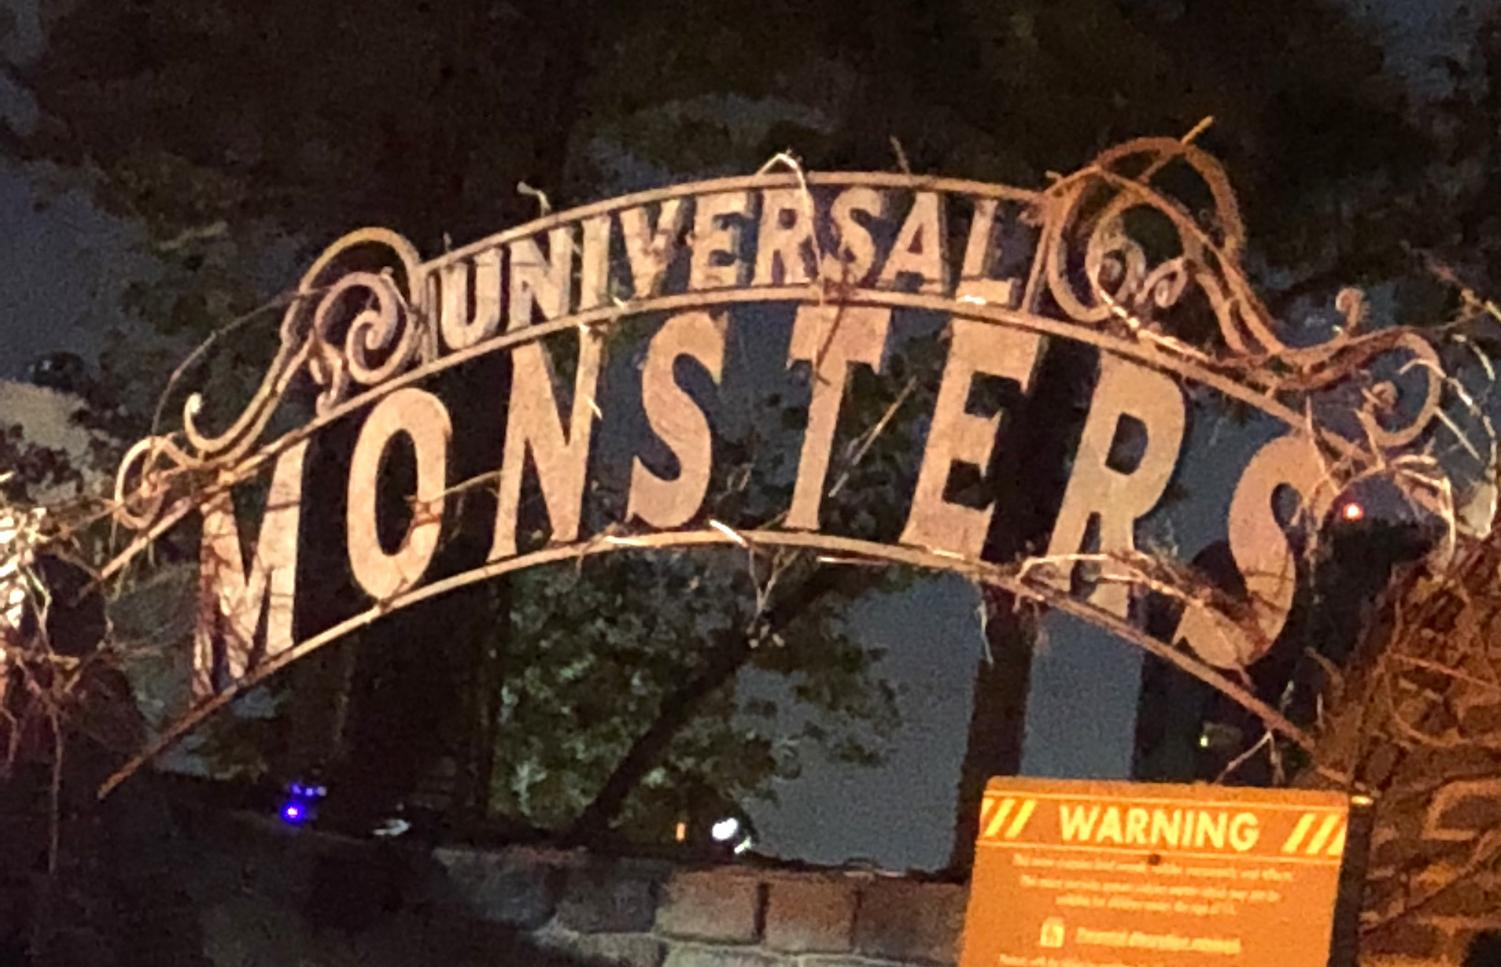 Halloween Horror Nights at Universal Studios is a mediocre fright at best.